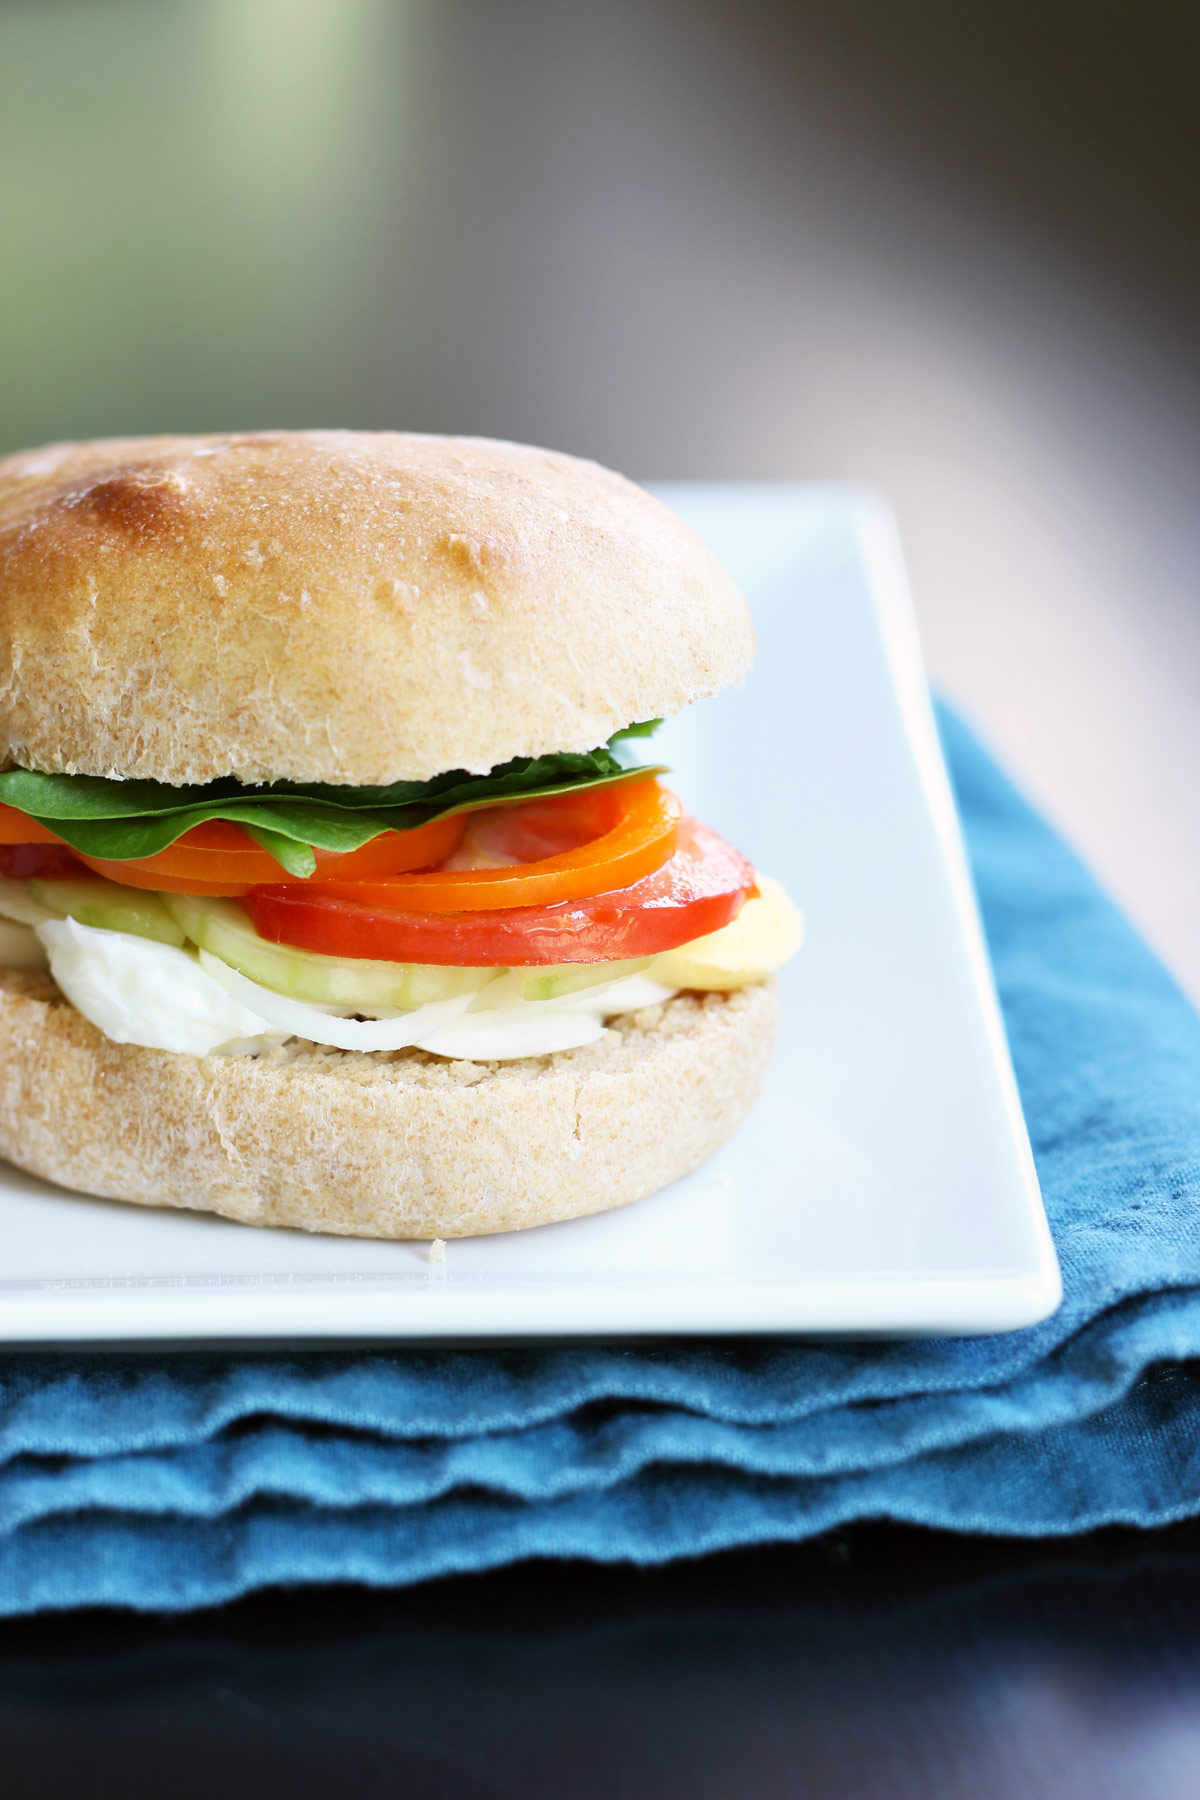 egg and vegetable sandwich on plate